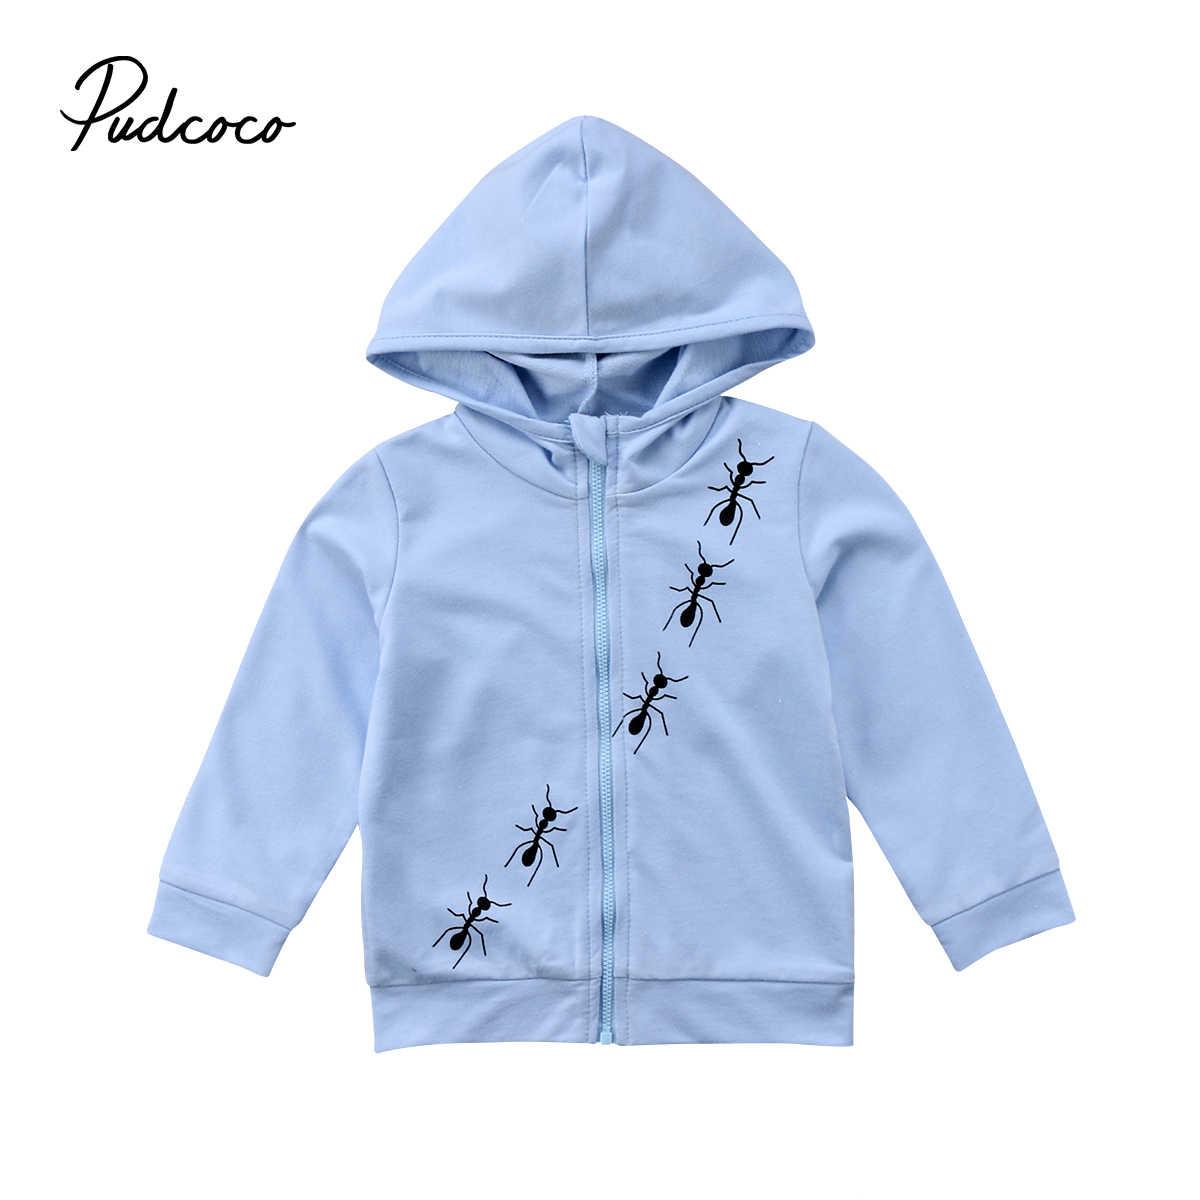 0755f2e7d890 Detail Feedback Questions about 2018 Brand New Toddler Child Kids ...